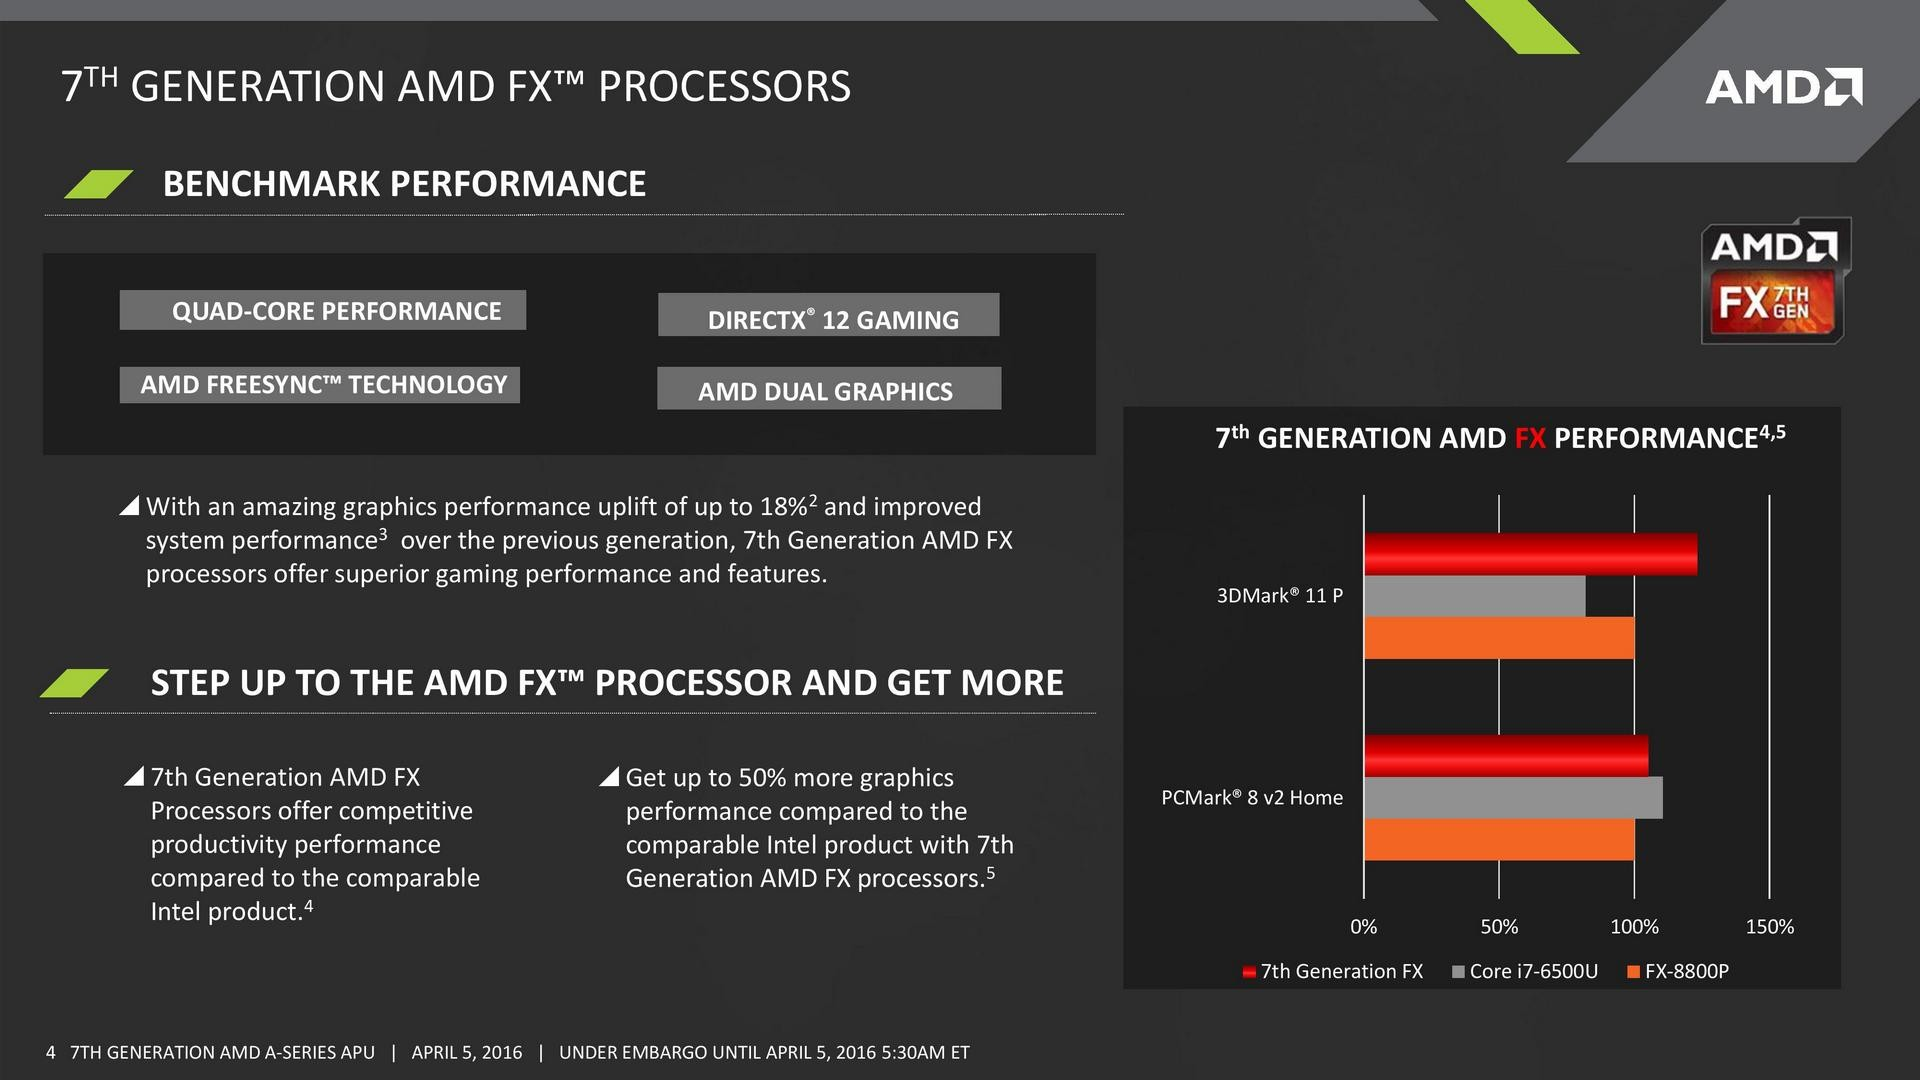 The new Bristol Ridge family will be formerly announced at Computex on 31st  May, 2016. AMD might also show case their new AM4 platform and  rmotherboards for …